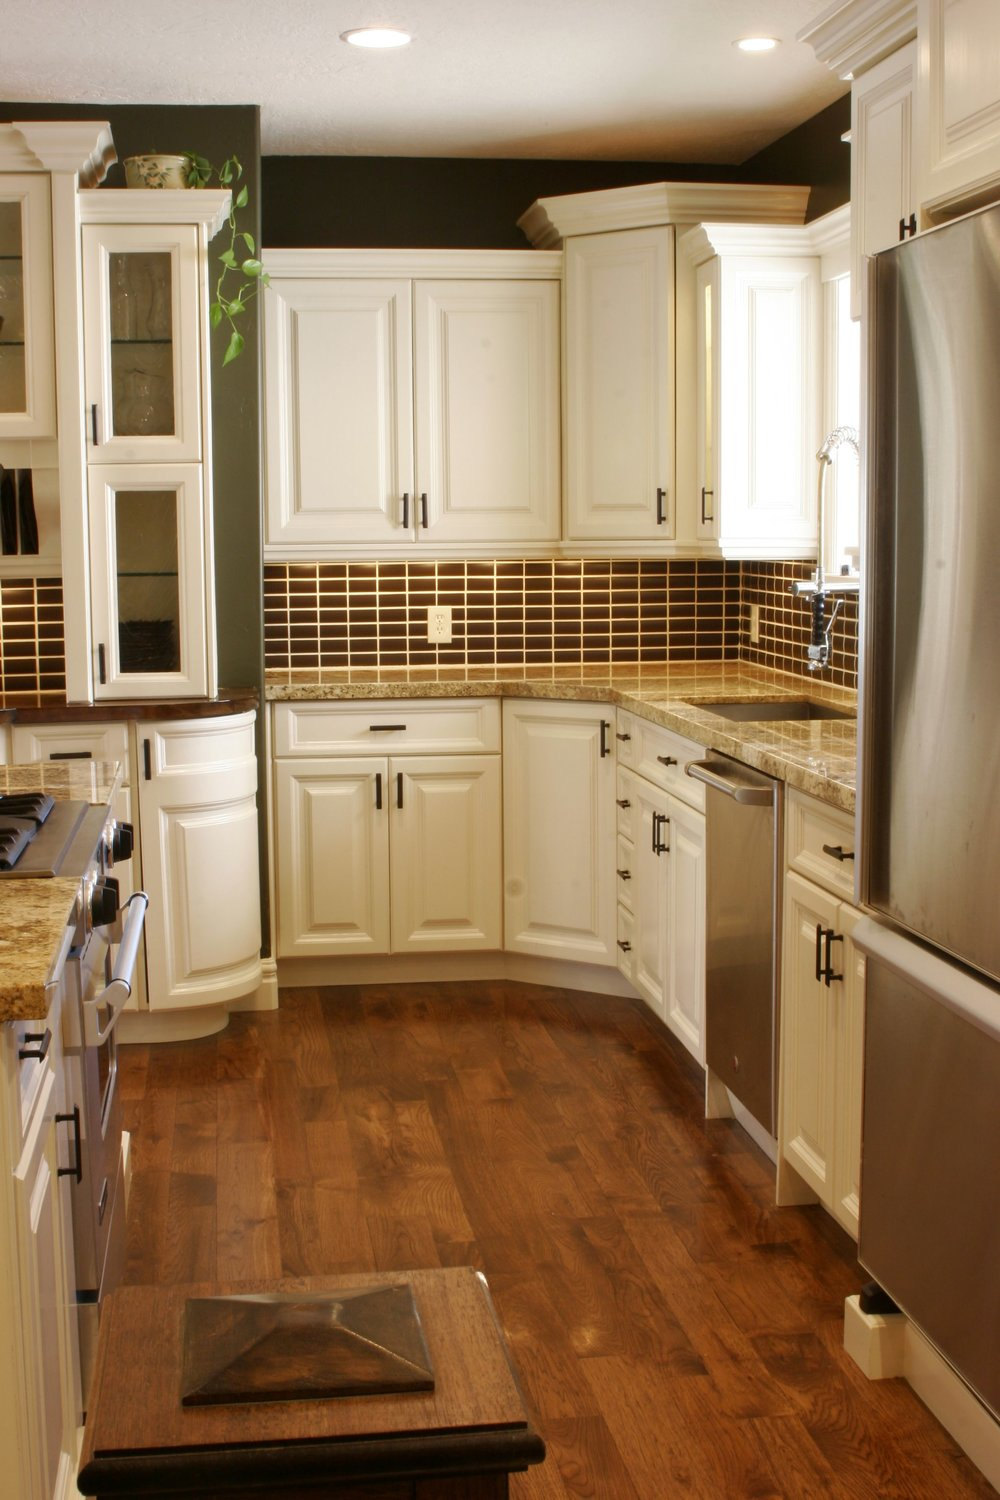 Rustic Hickory floorts were stained dark for a more uniform color to contrast the cream colored cabinets